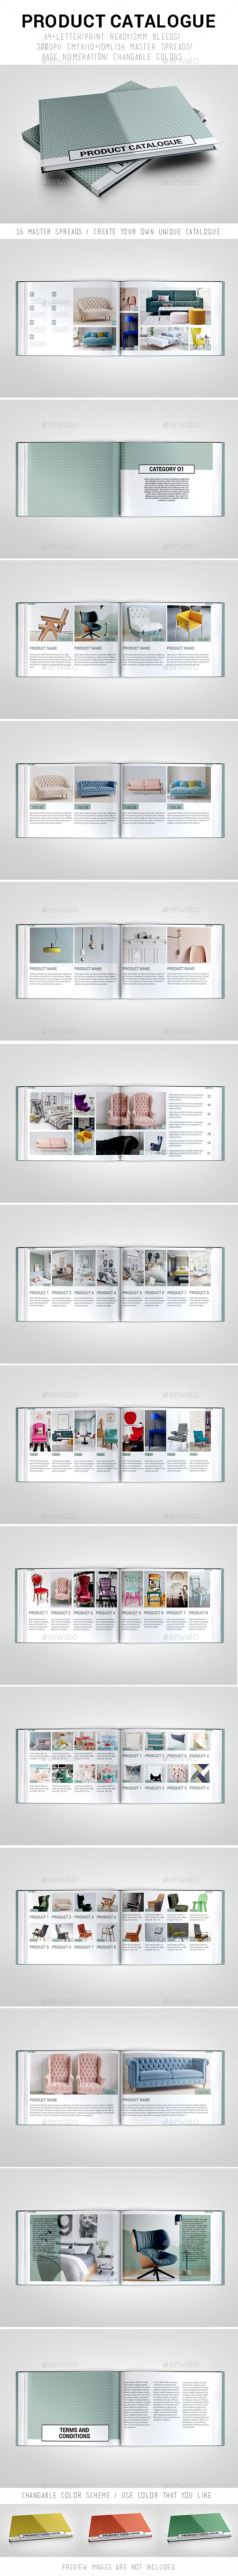 Product Catalogue - Catalogs Brochures